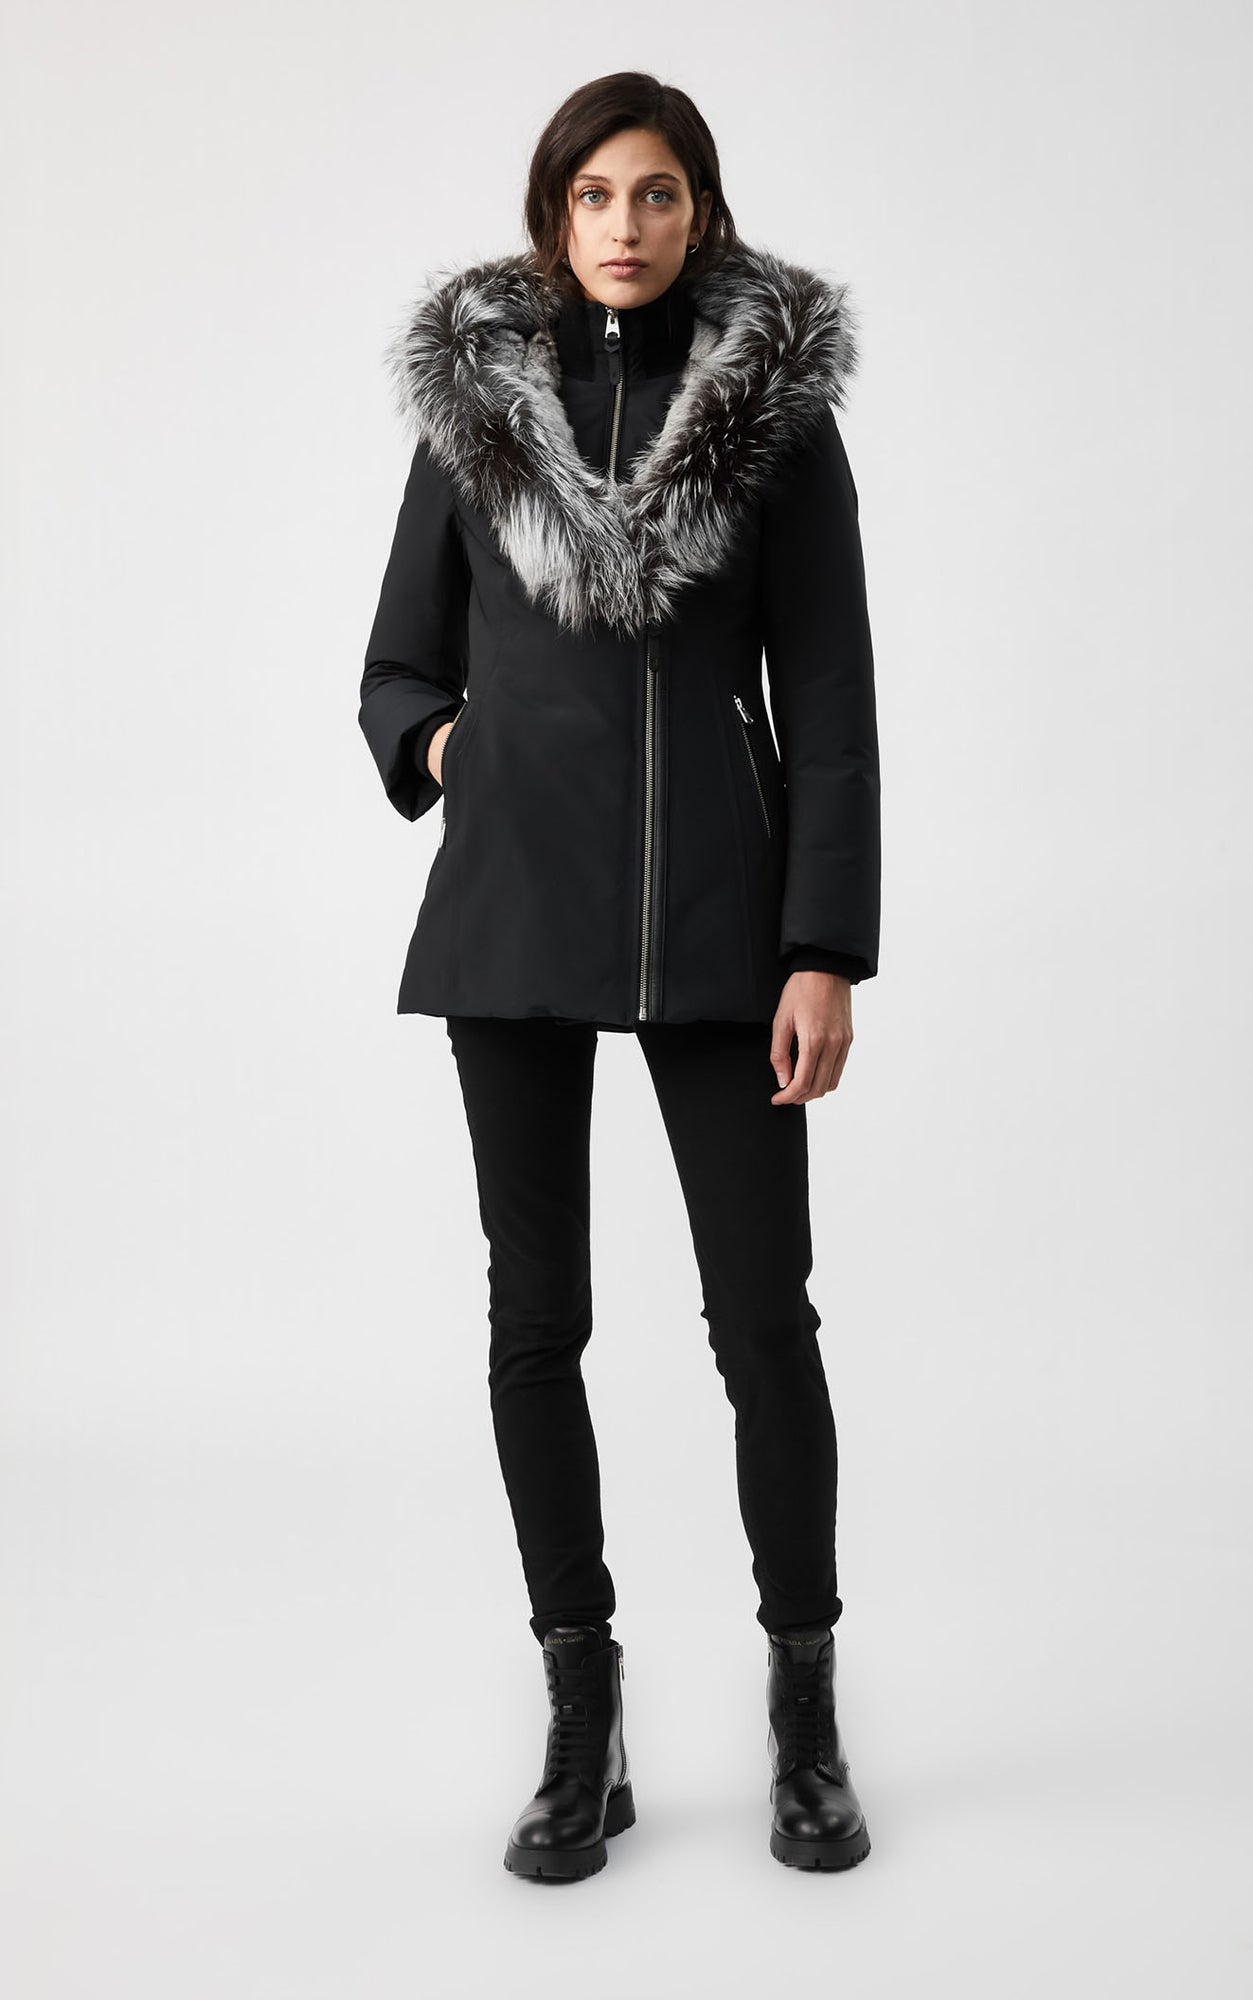 MACKAGE AKIVA DOWN WOMEN'S COAT W/ SILVERFOX FUR TRIM COLLAR/HOOD AKIVA-XR-BL/SIL